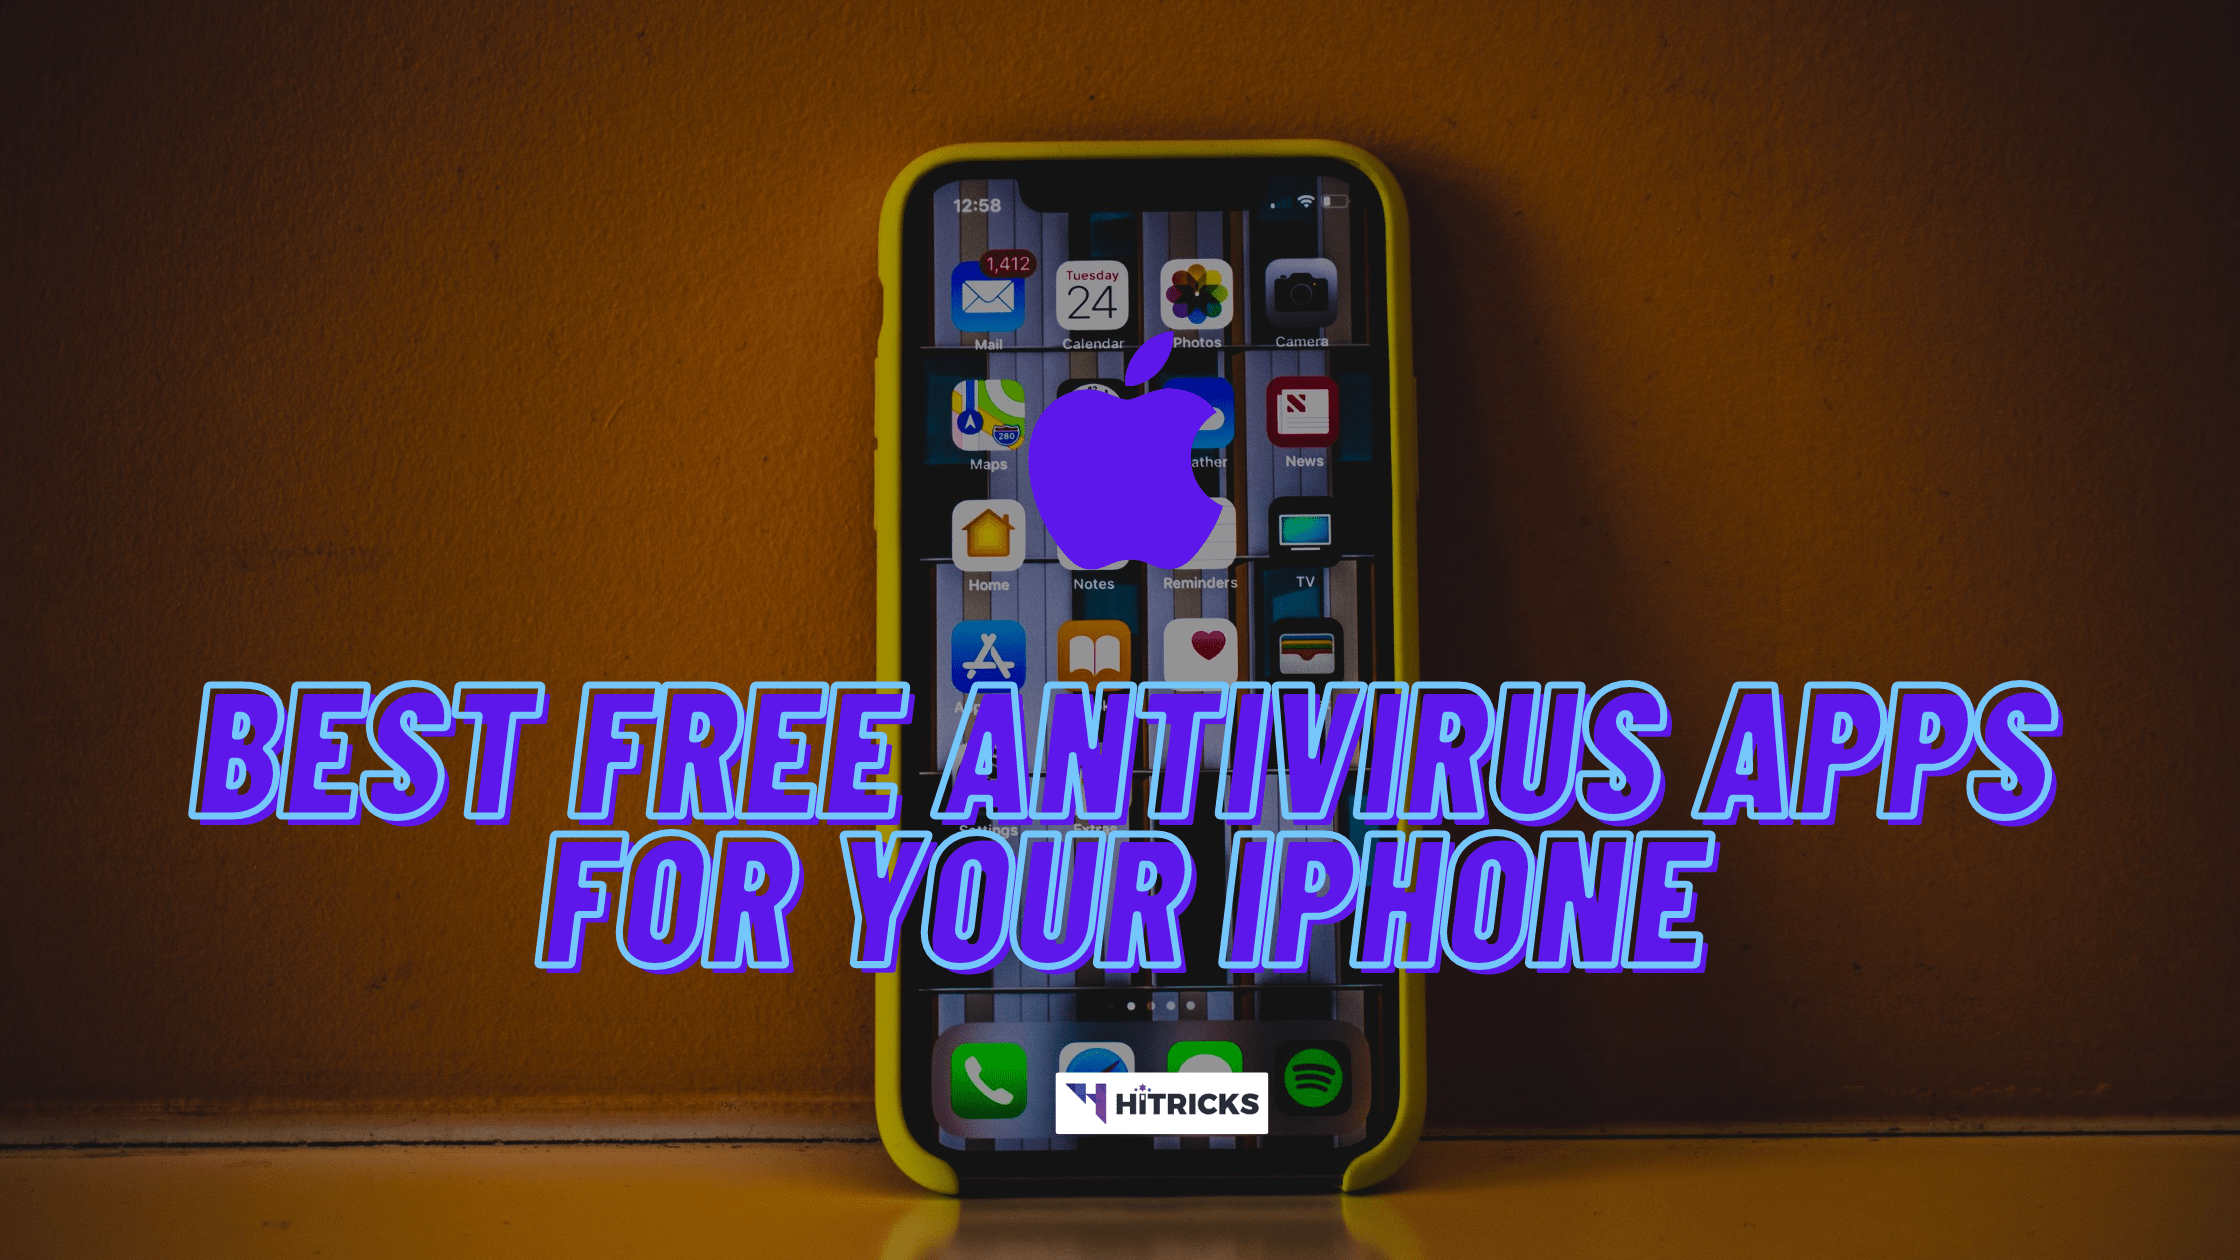 Best Free iOS Antivirus Apps for your iPhone